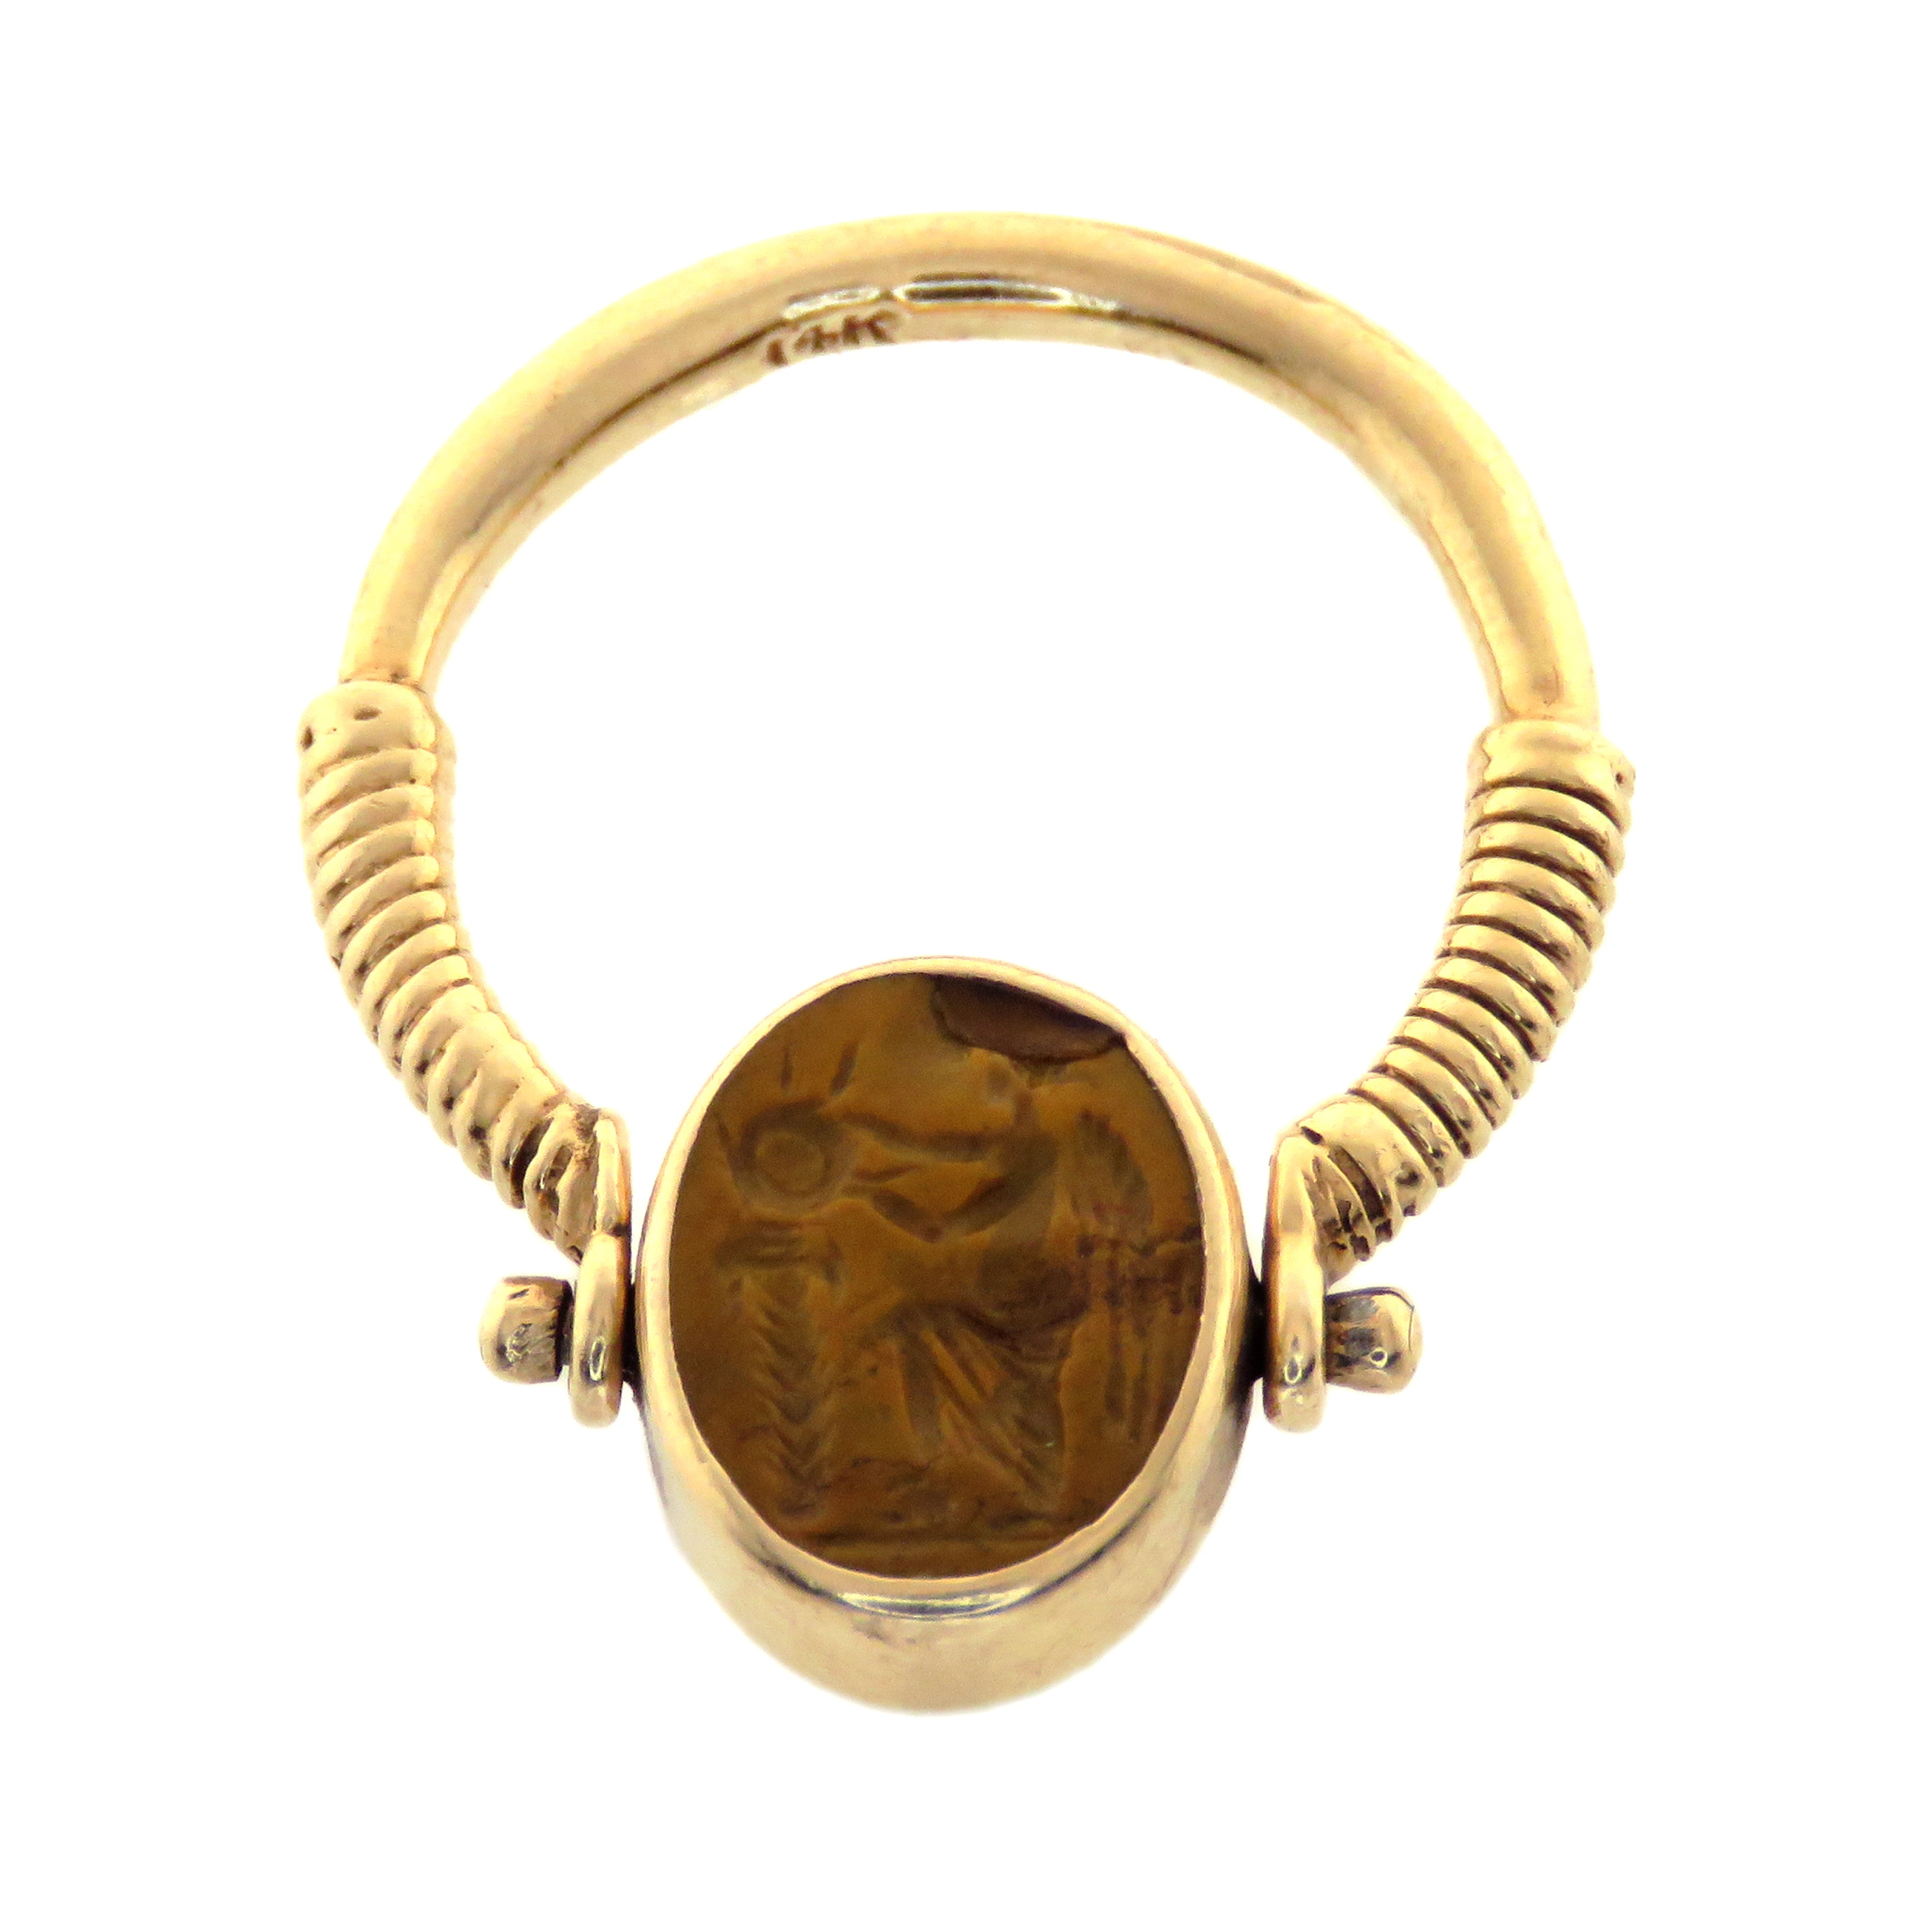 14ct Honey Jasper Eros Intaglio Flip Ring c. 1st Century